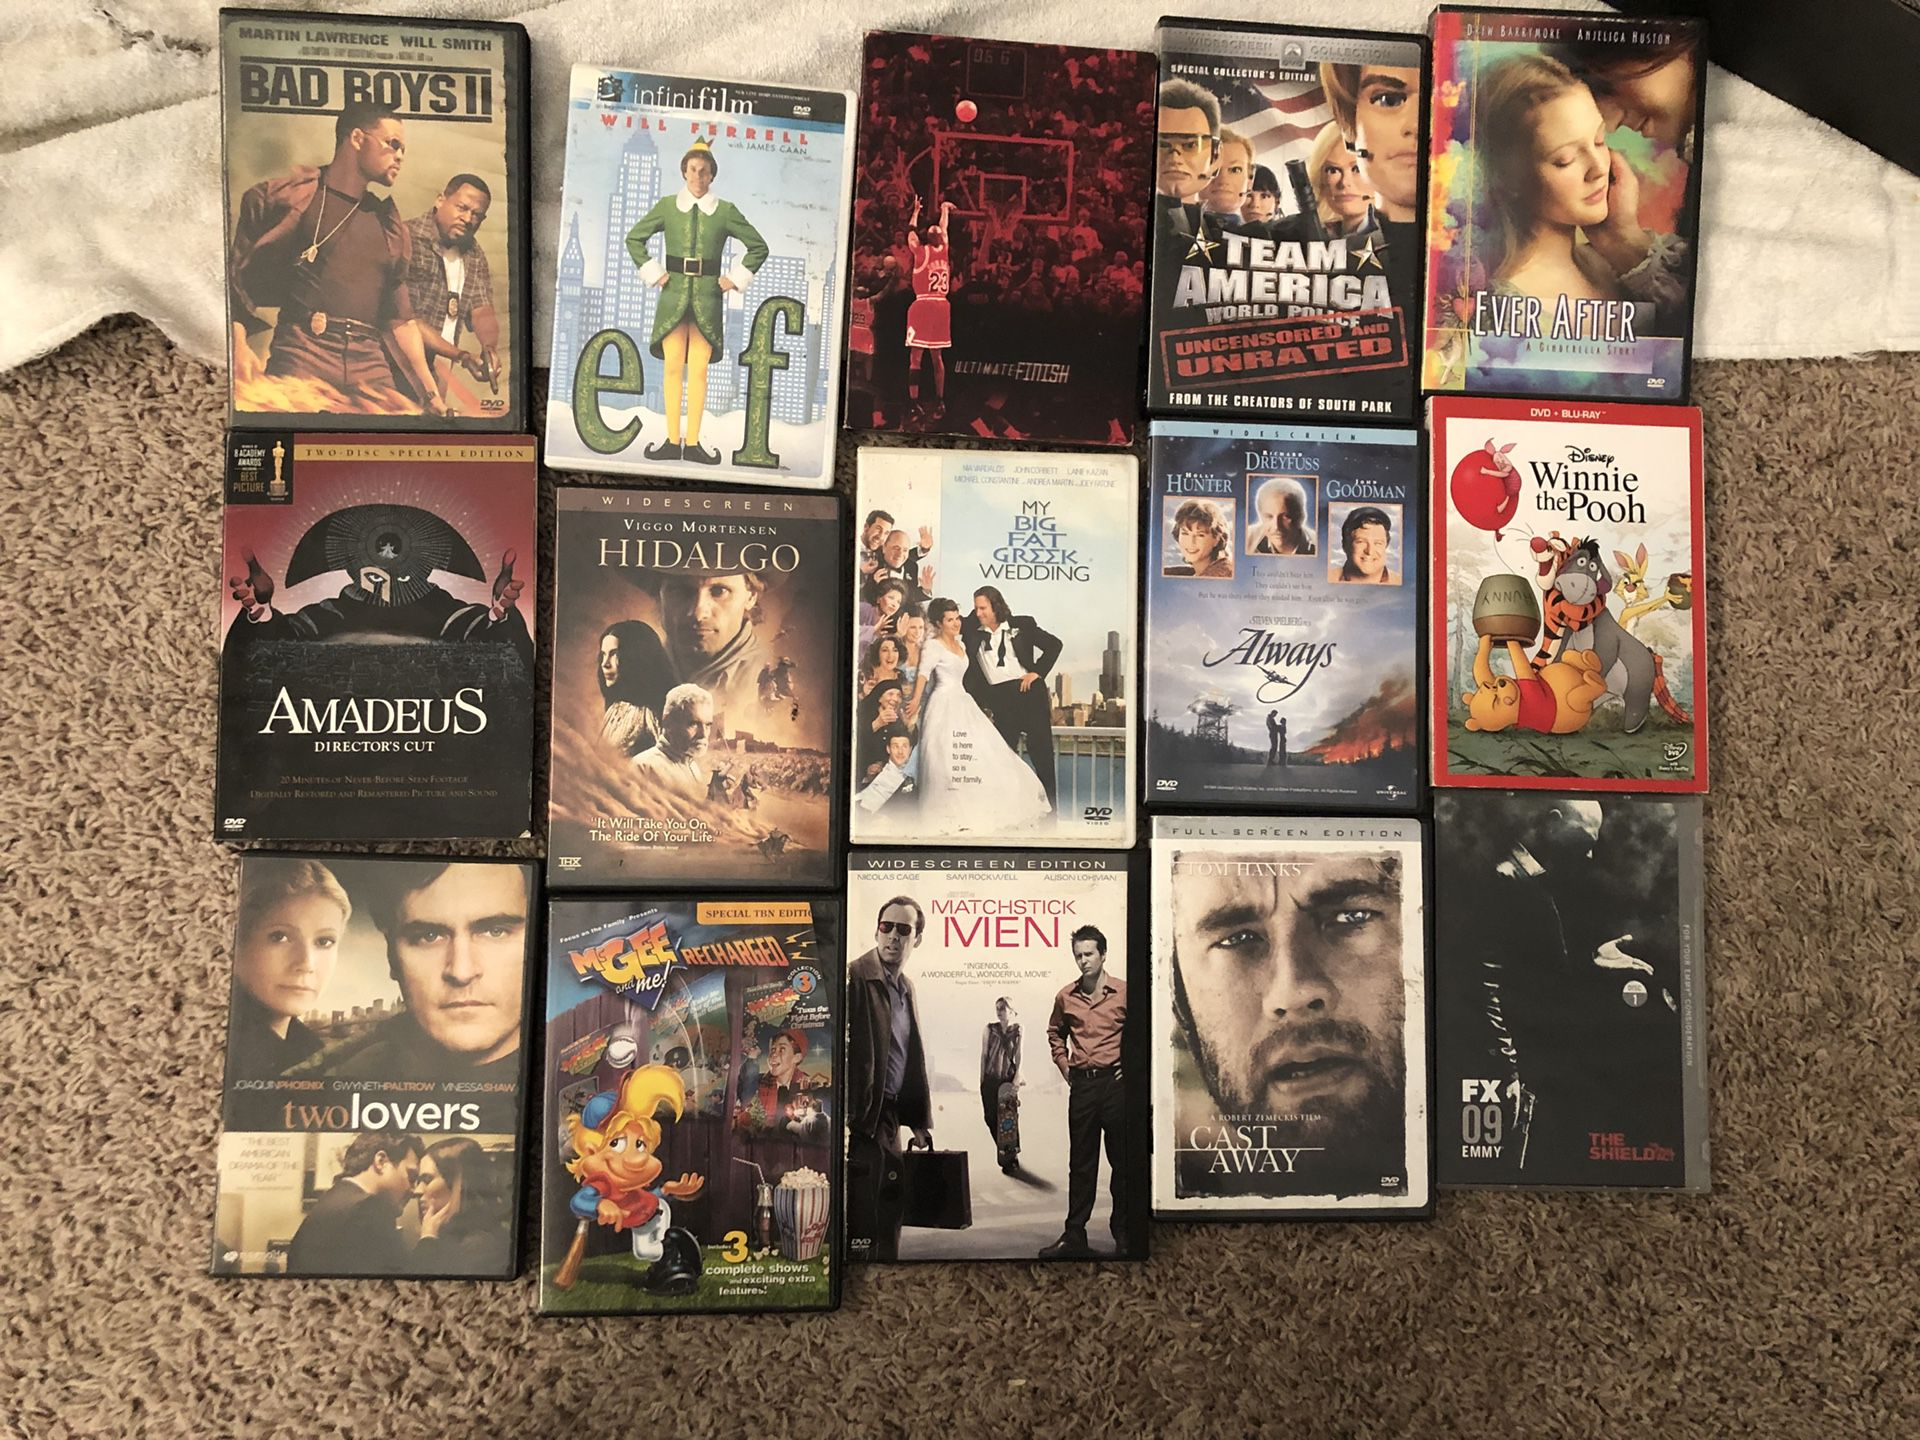 Movies and games